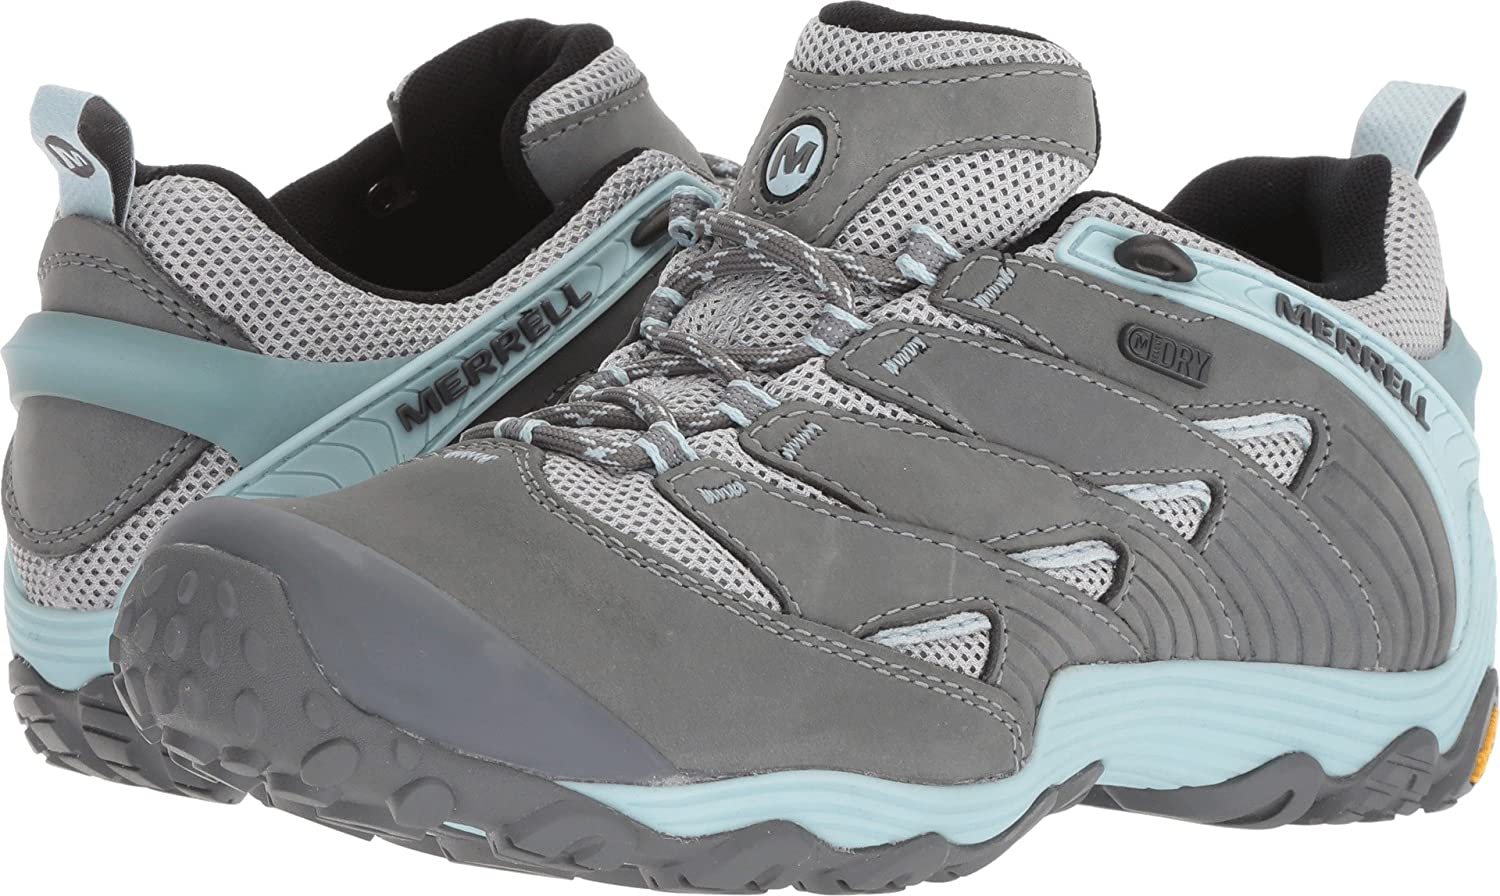 Merrell B078NGH6R3 Women's Chameleon 7 Waterproof Hiking Shoe B078NGH6R3 Merrell 11 B(M) US|Frozen Blue 6a841f